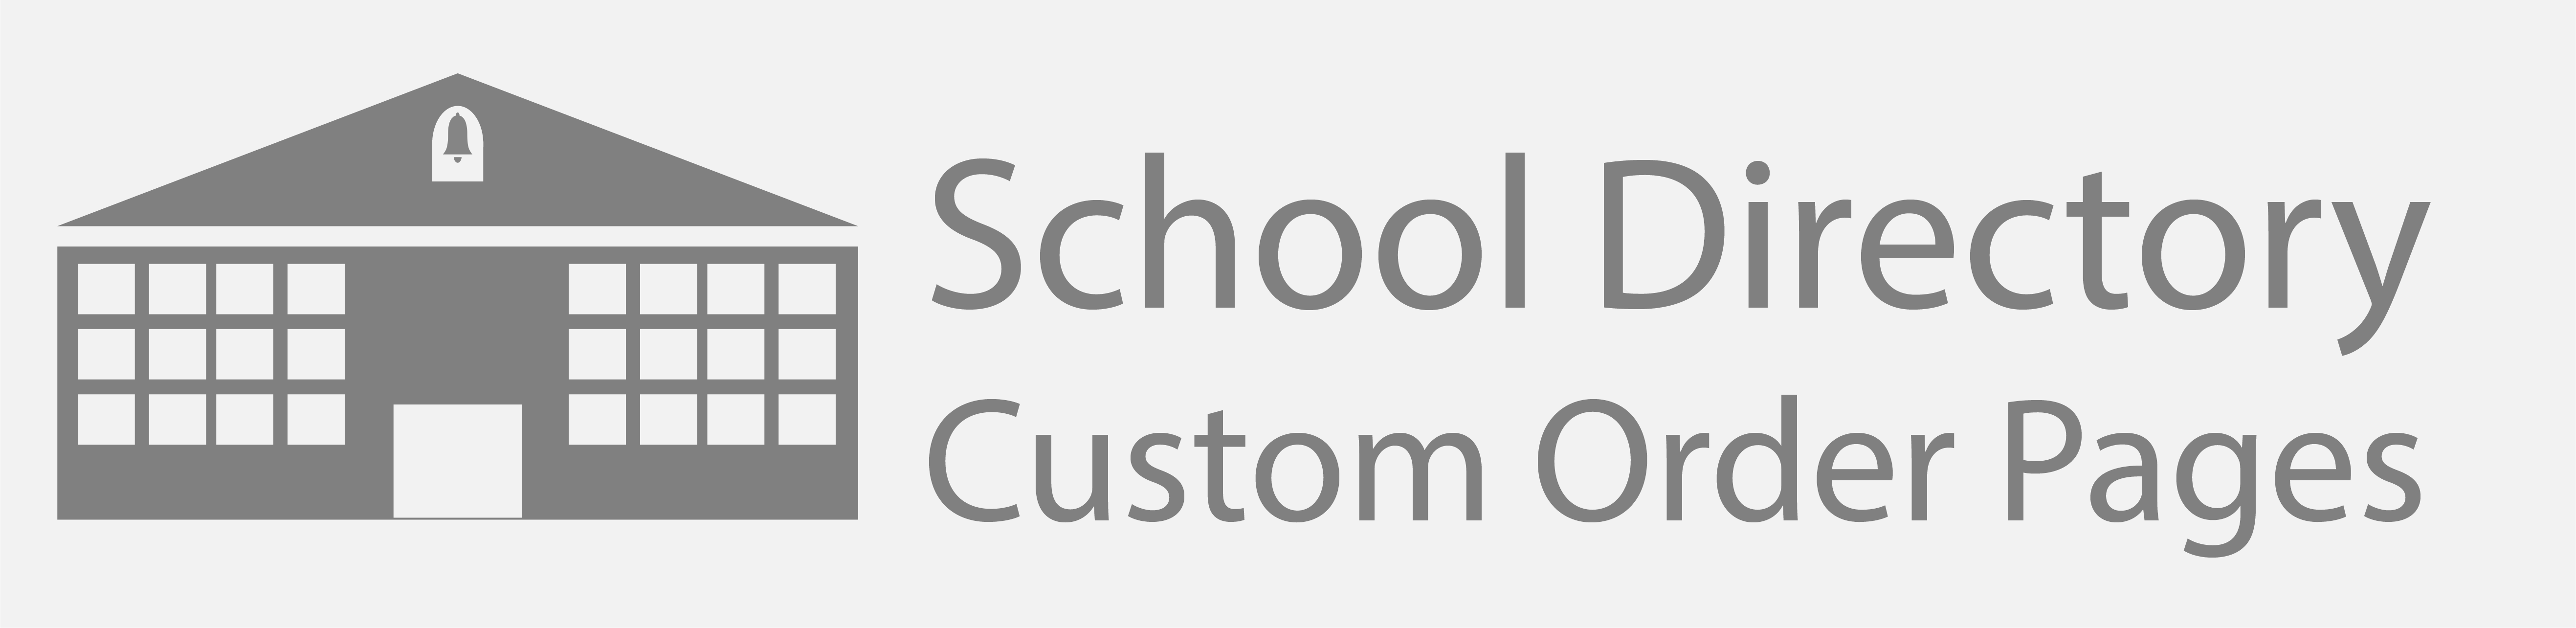 School Directory: Custom Order Pages